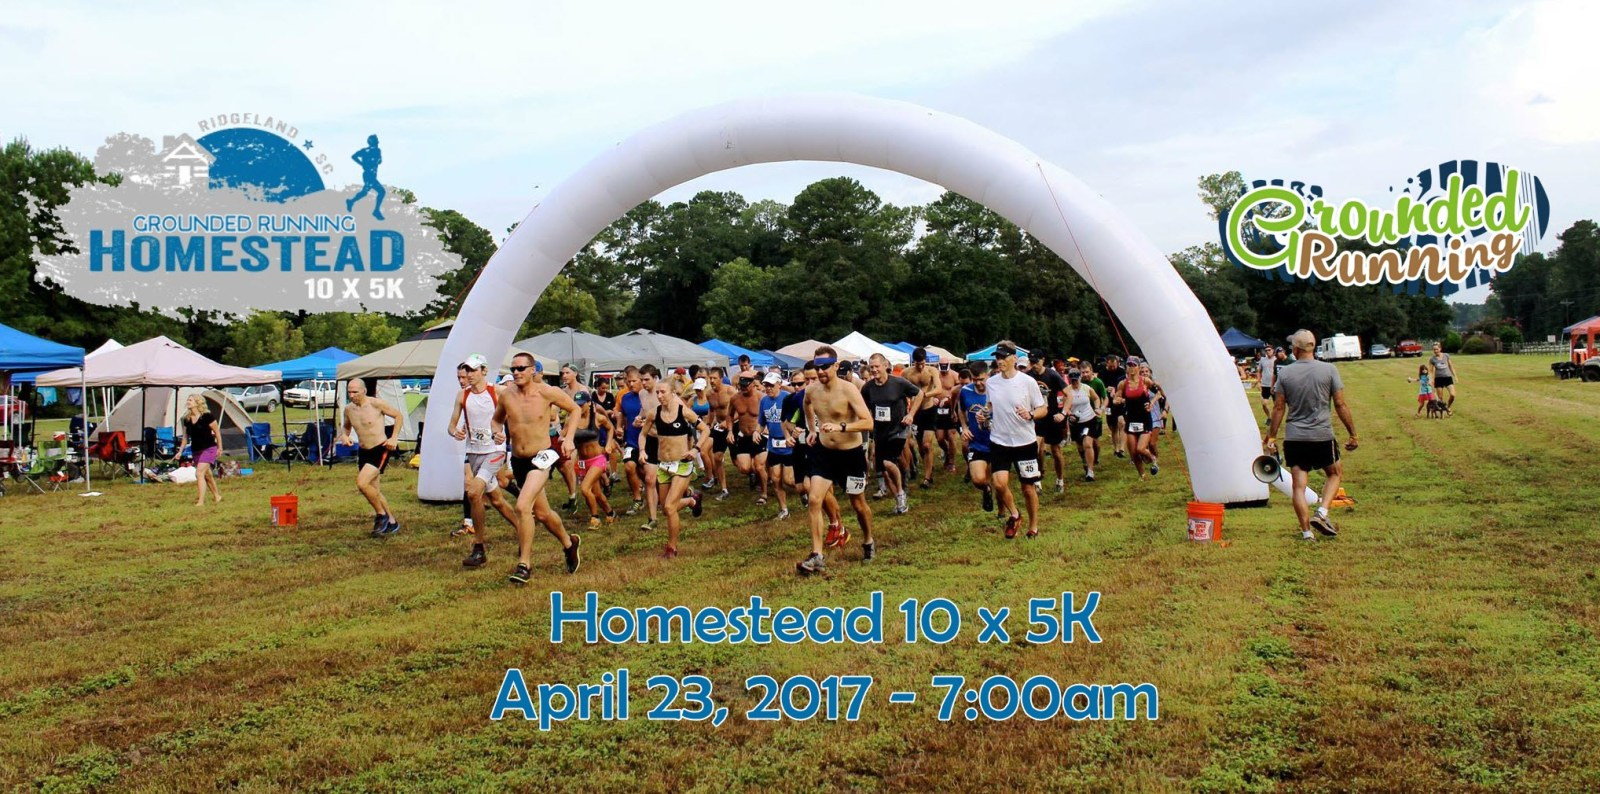 Homestead 10 x 5k